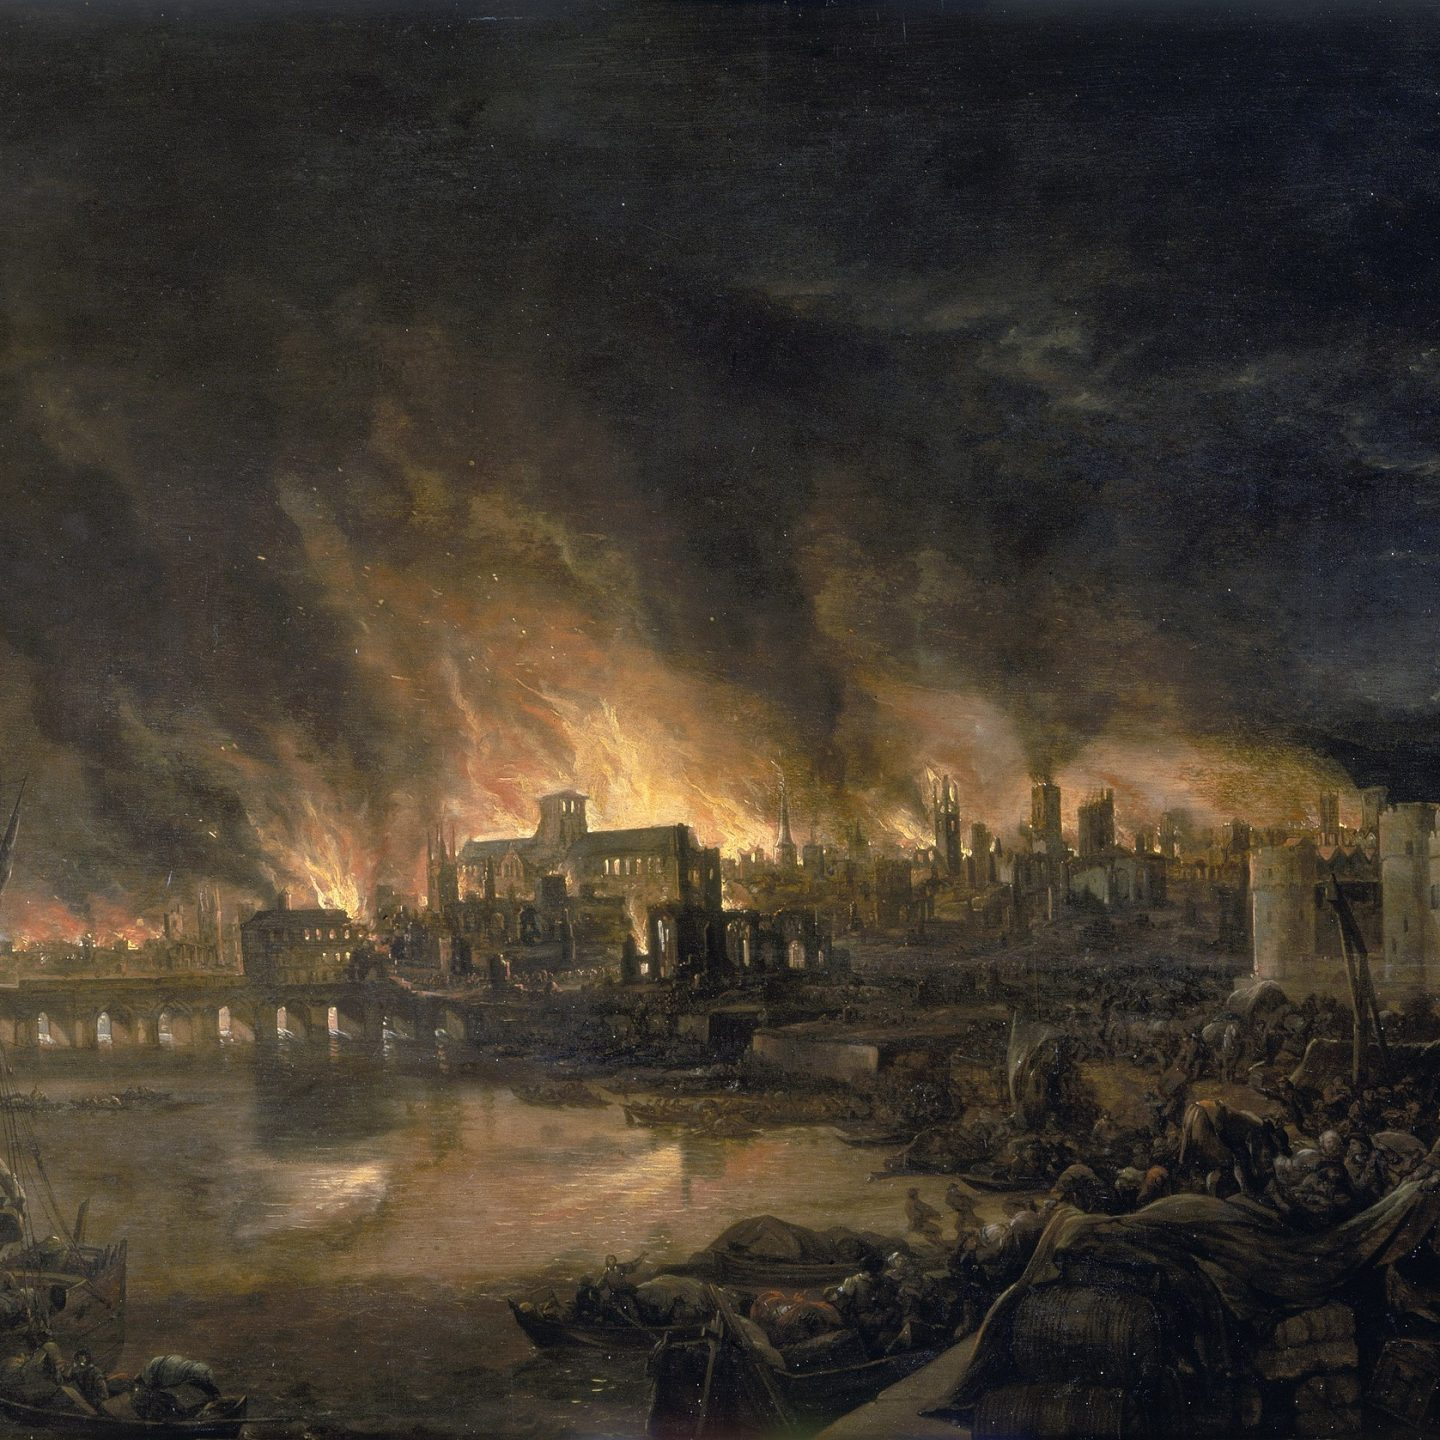 September 2, 1666: The Great Fire of London